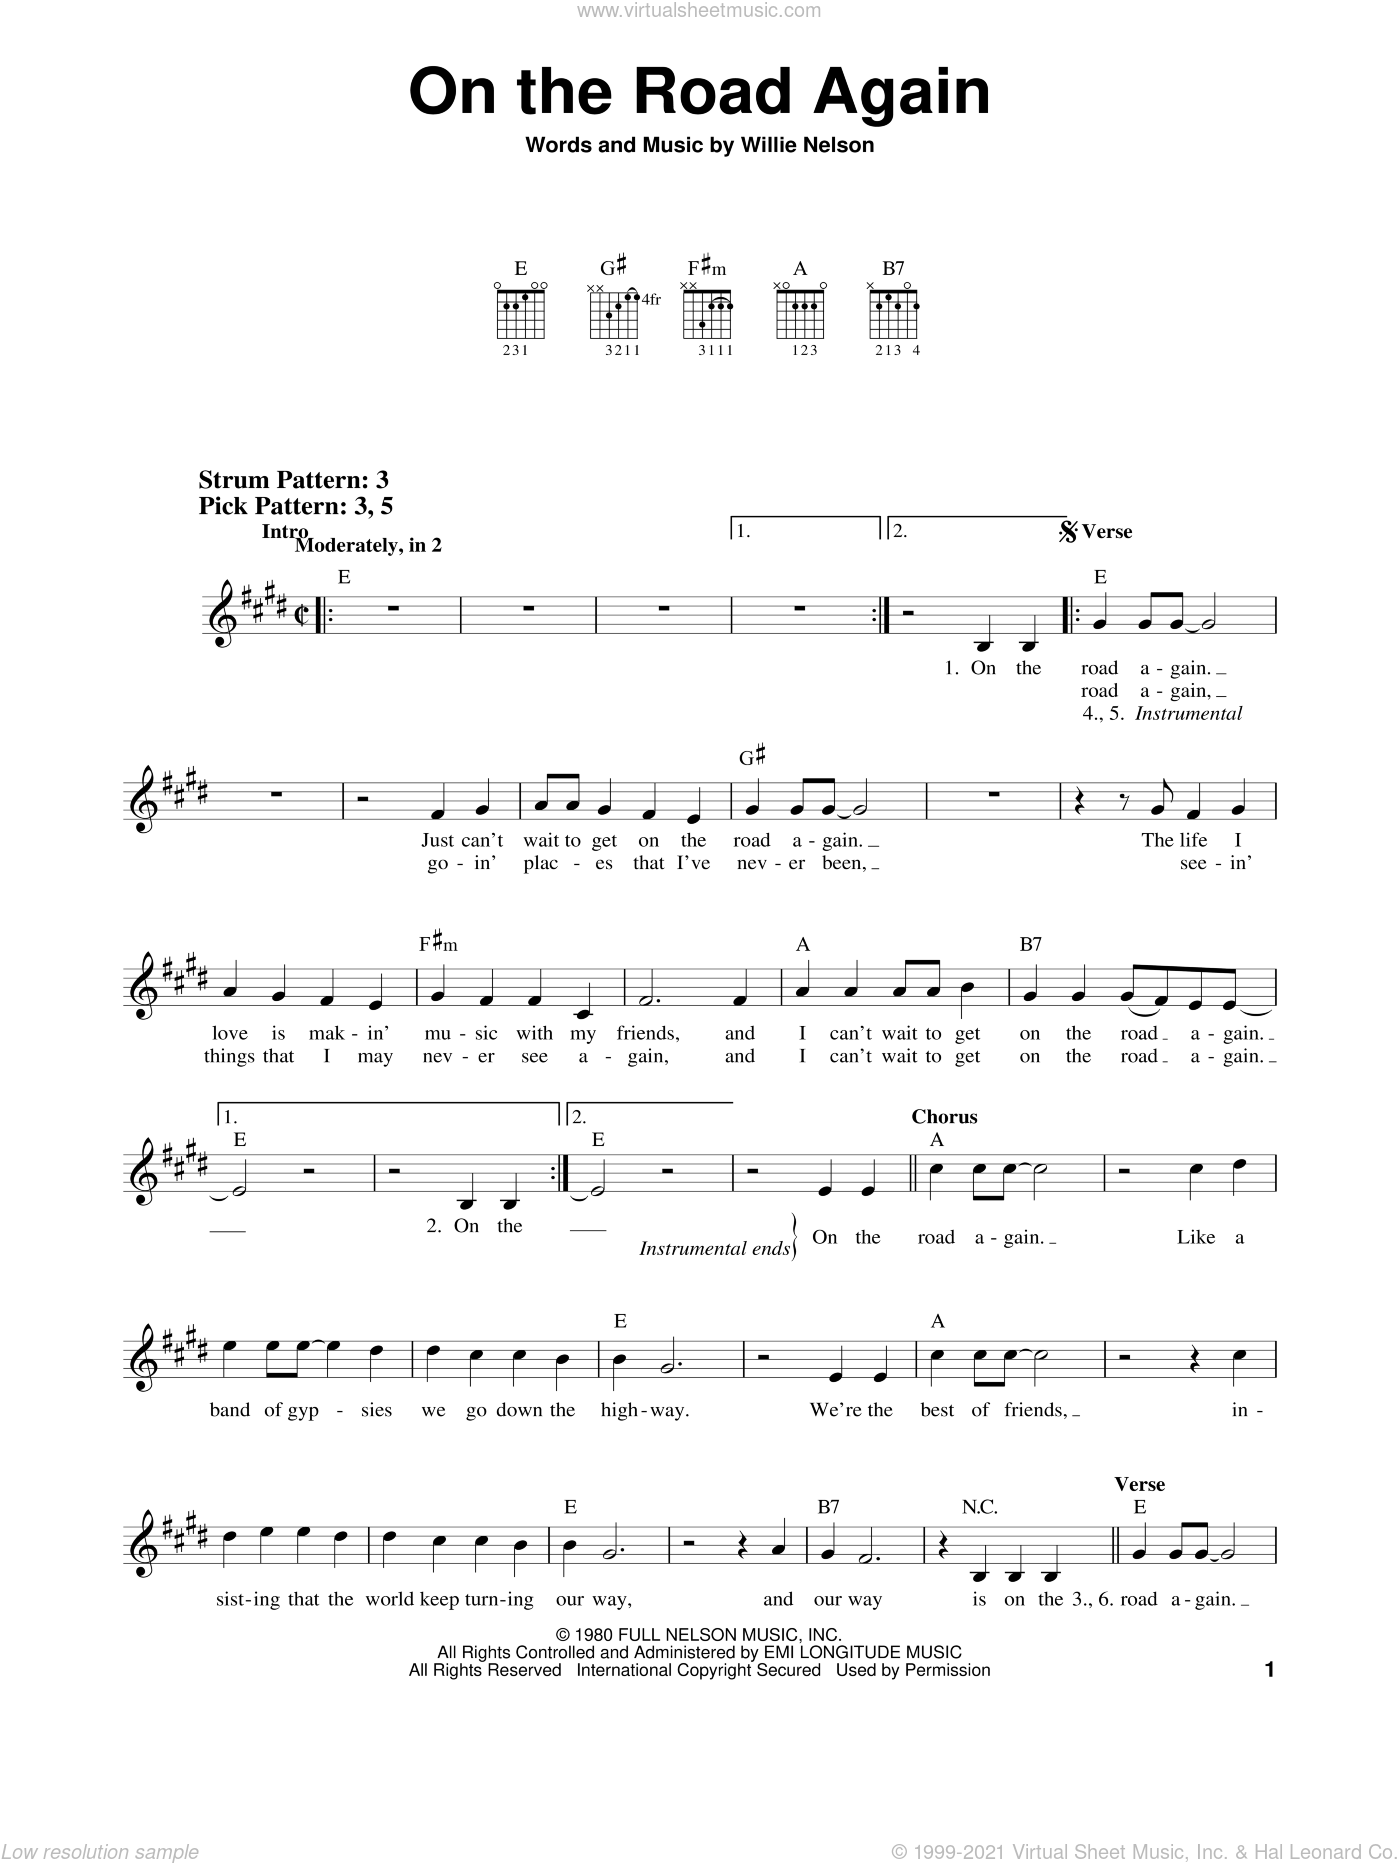 On The Road Again sheet music for guitar solo (chords) by Willie Nelson